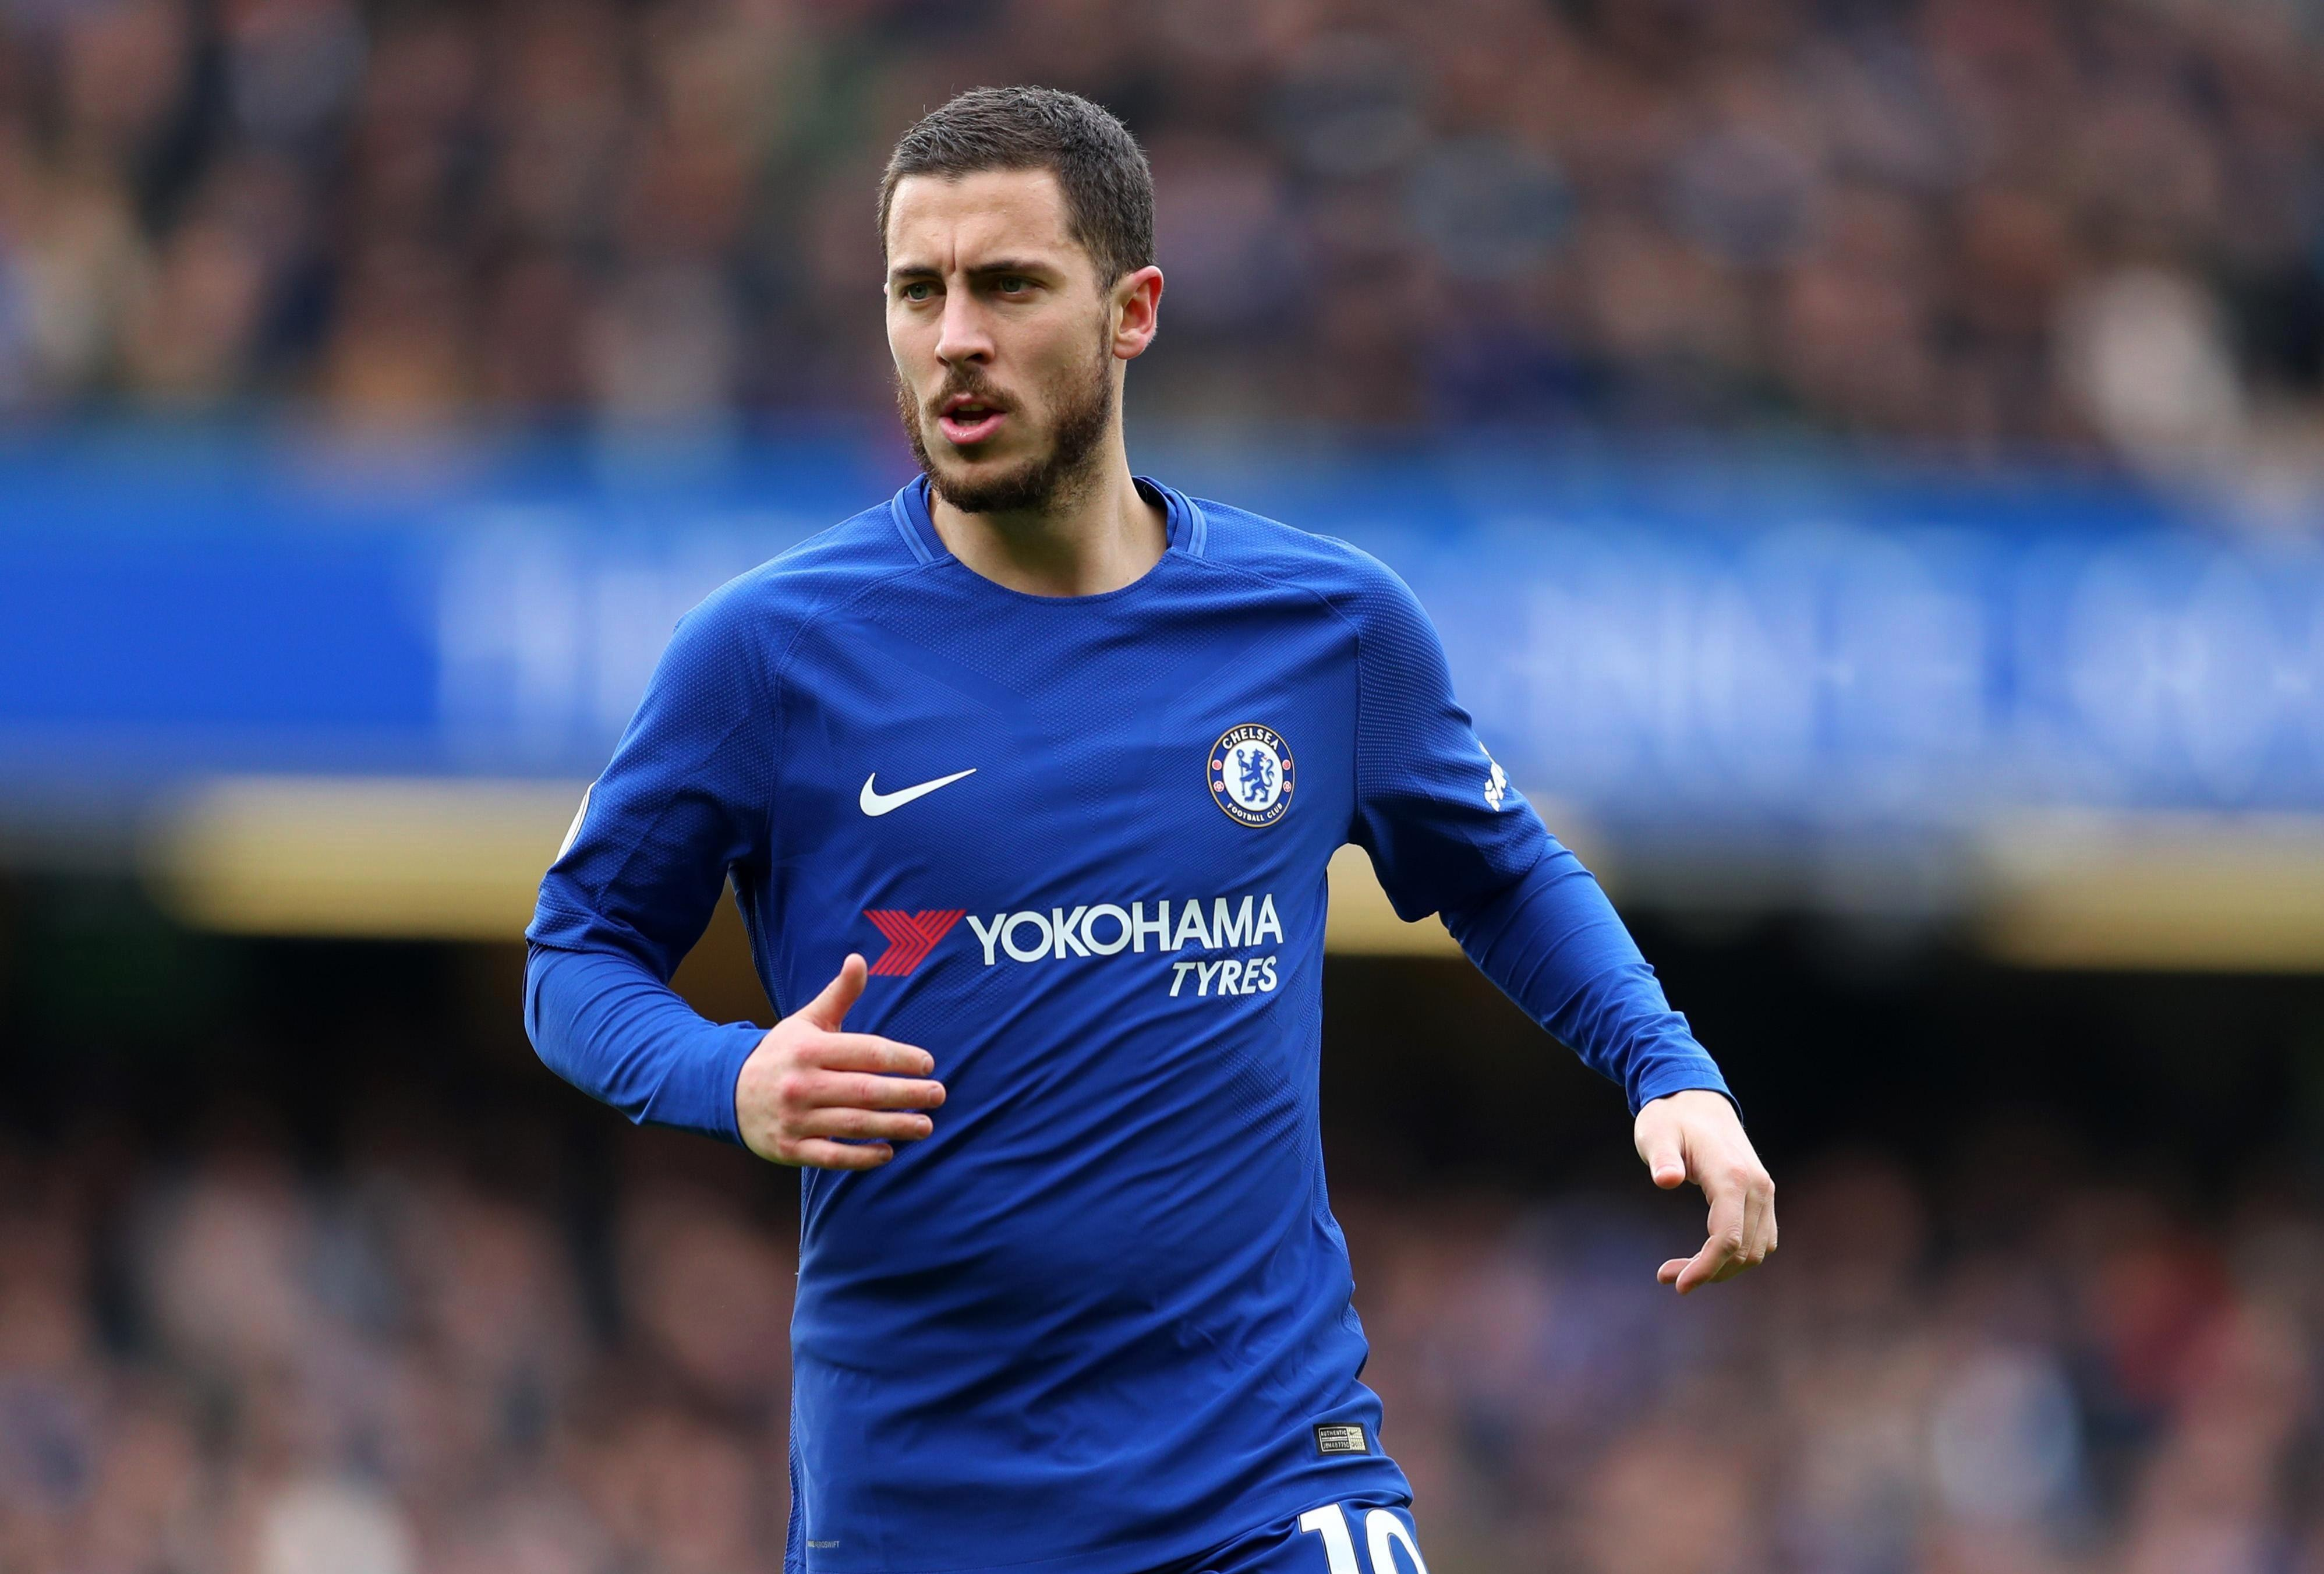 Chelsea are ready to offer Eden Hazard a lucrative new contract